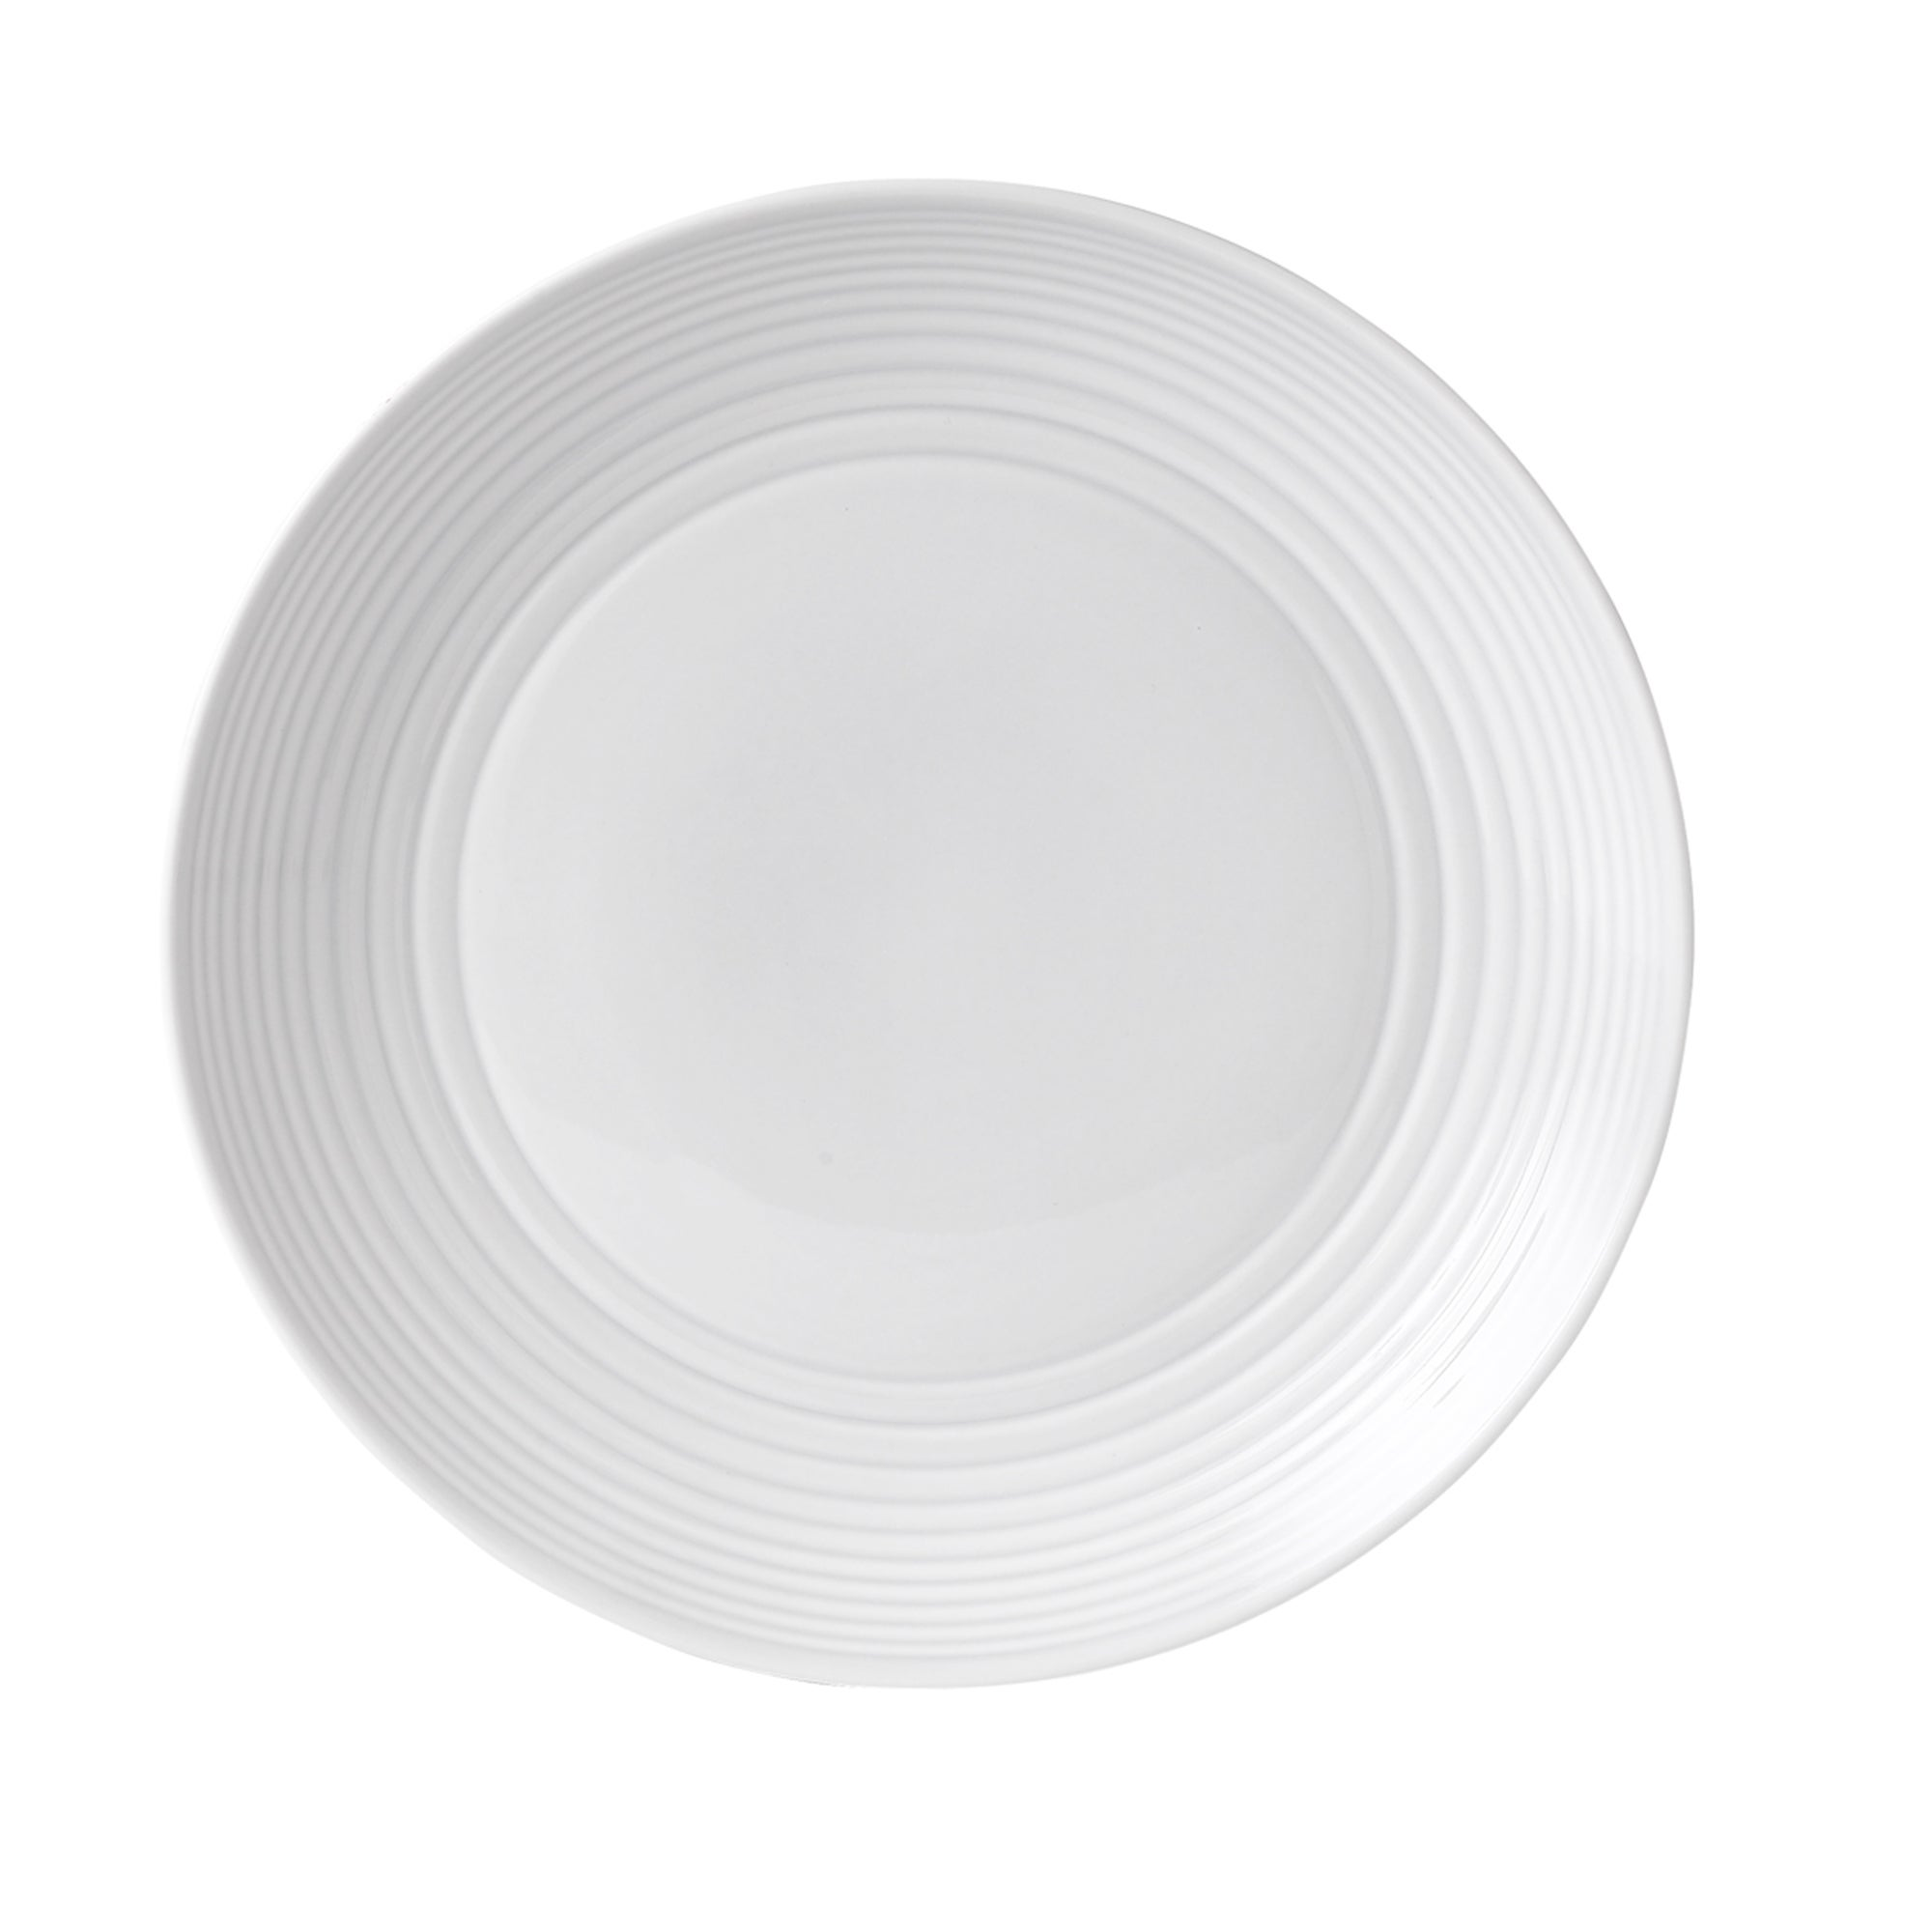 White Gordon Ramsay Maze Collection Dinner Plate